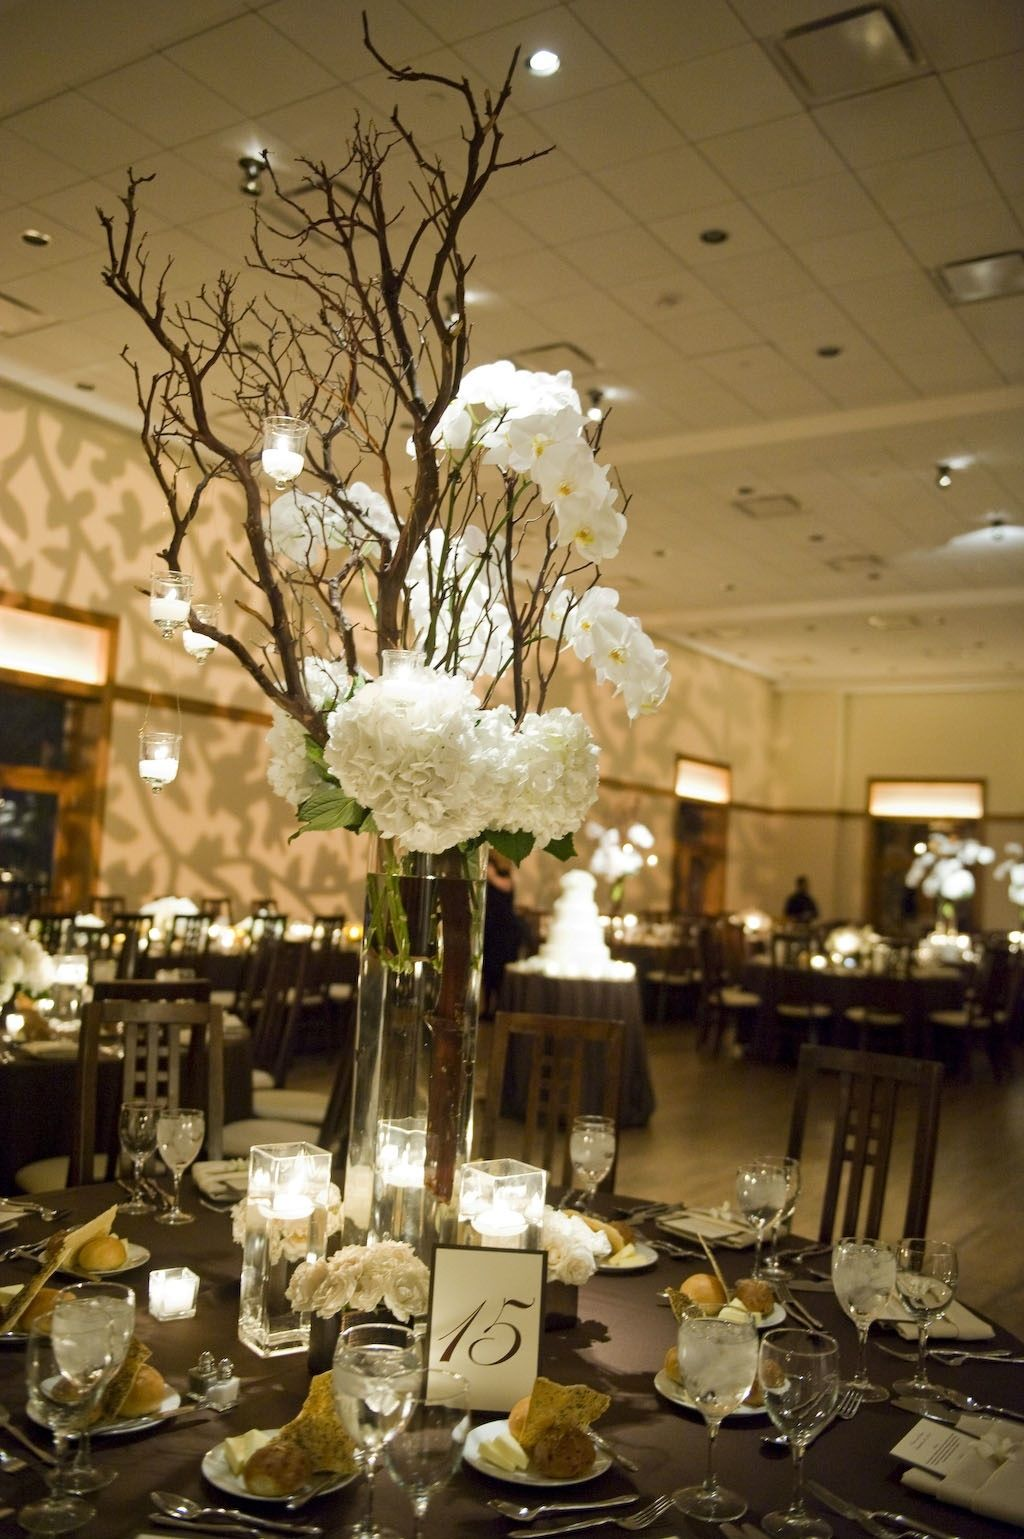 Some centerpieces will be in tall vases with branches n candles some centerpieces will be in tall vases with branches n candles the hydrangeas will be reviewsmspy